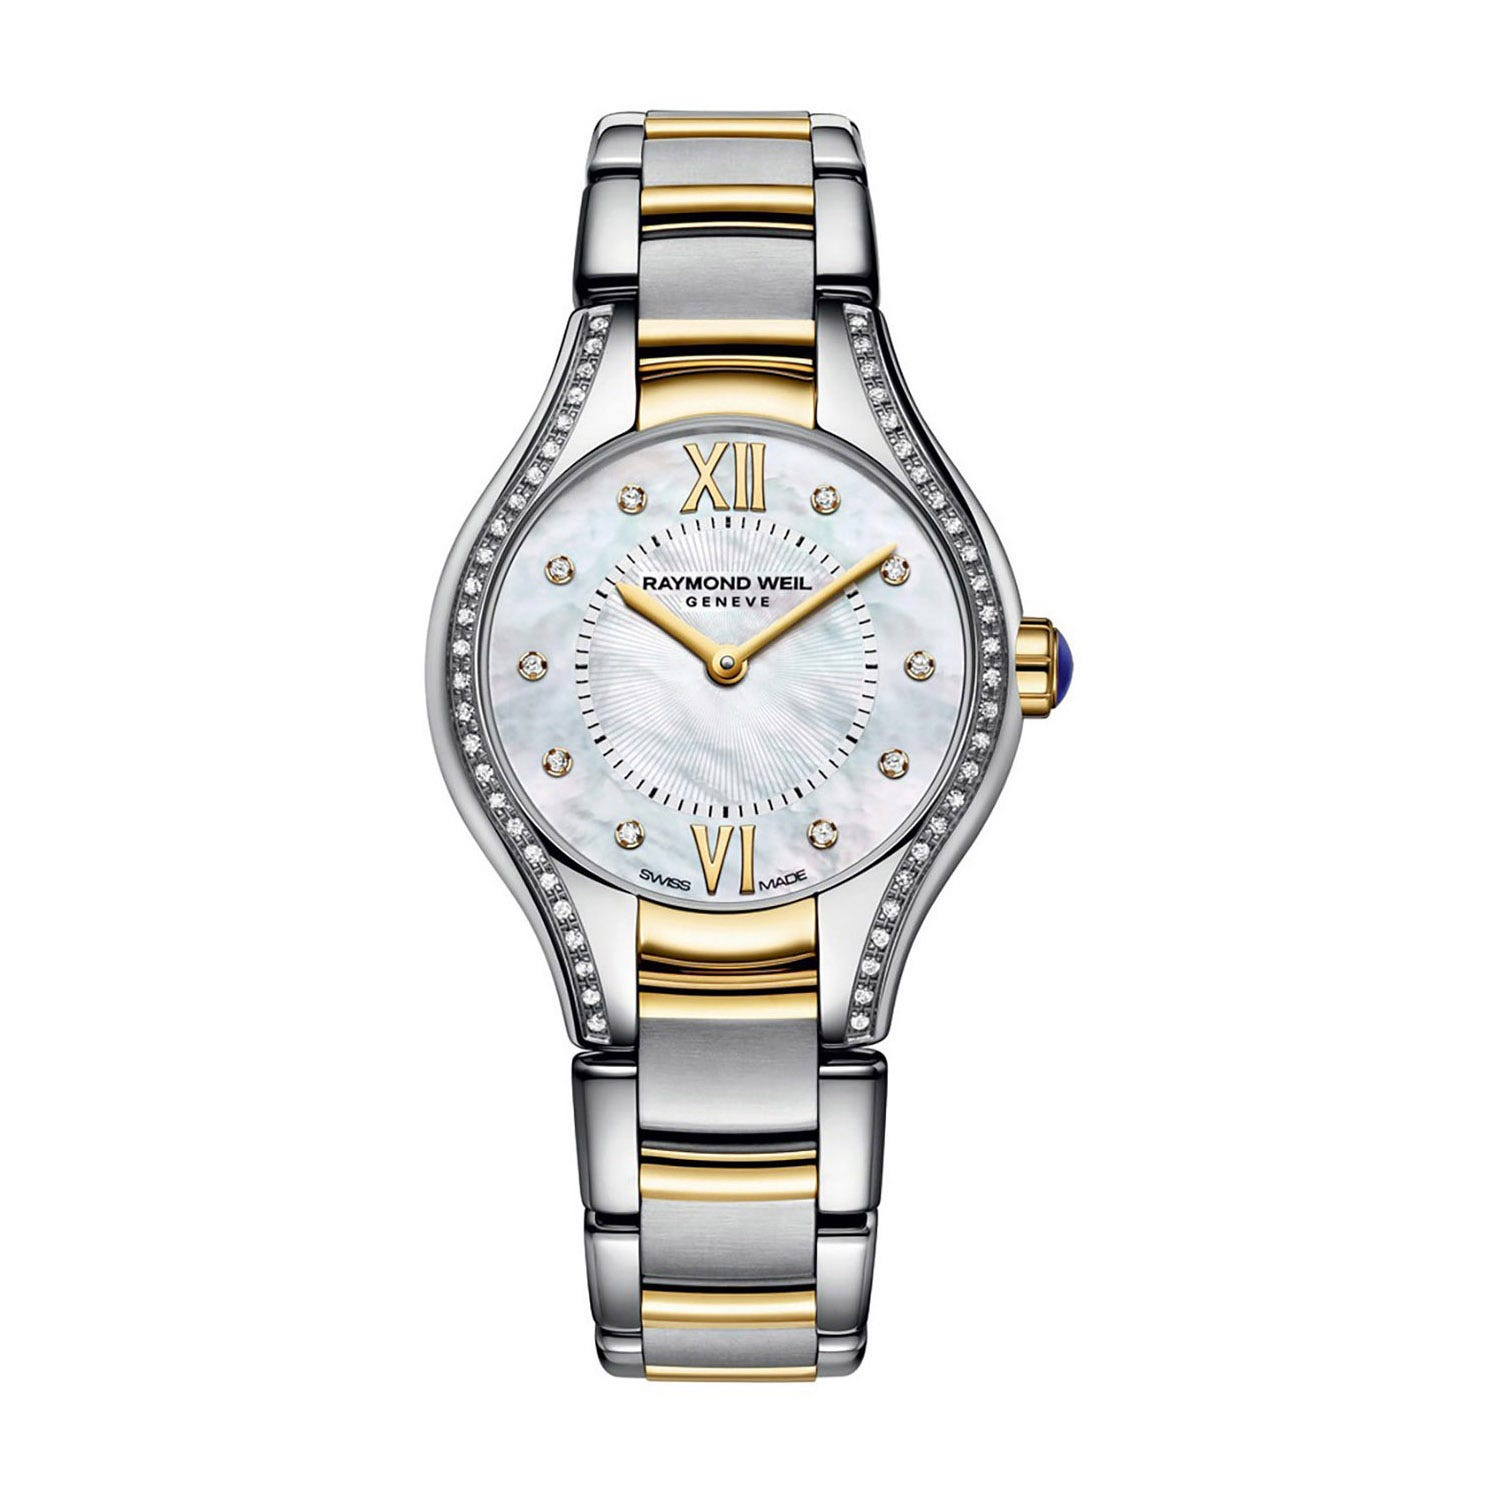 Raymond Weil Noemia ladies' diamond-set mother of pearl dial two-tone bracelet watch